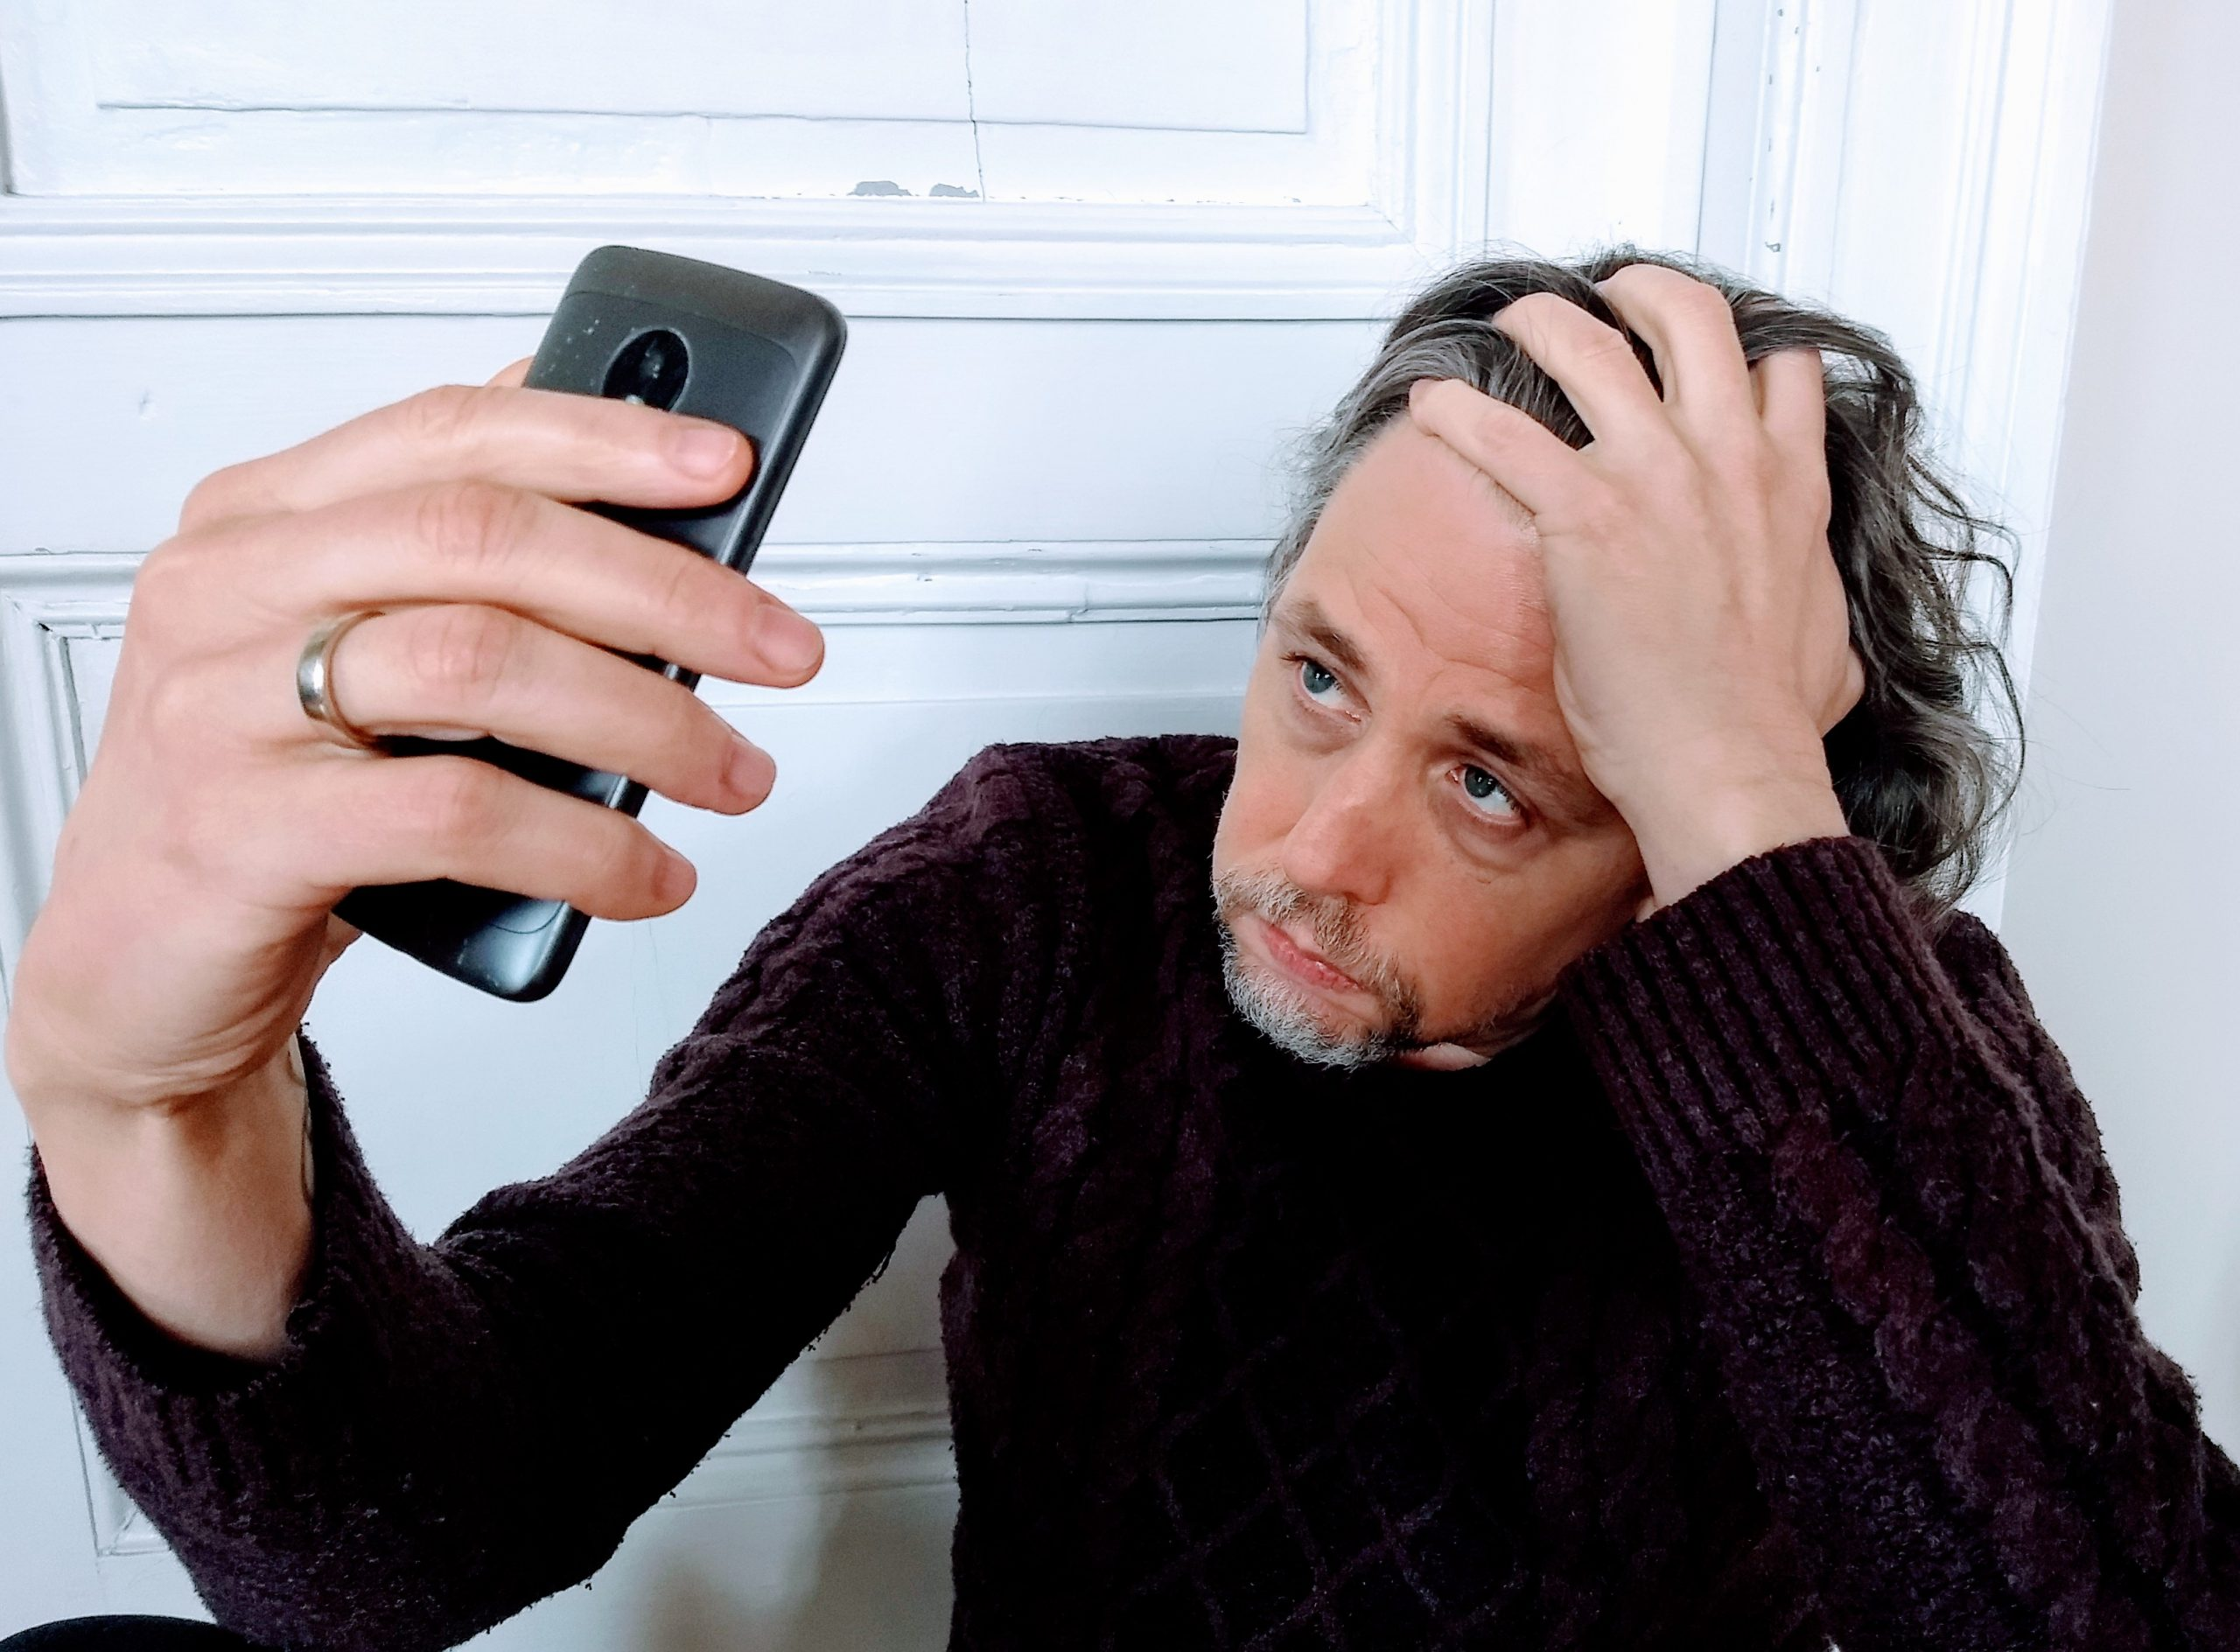 Frank During looking at his phone in desperation